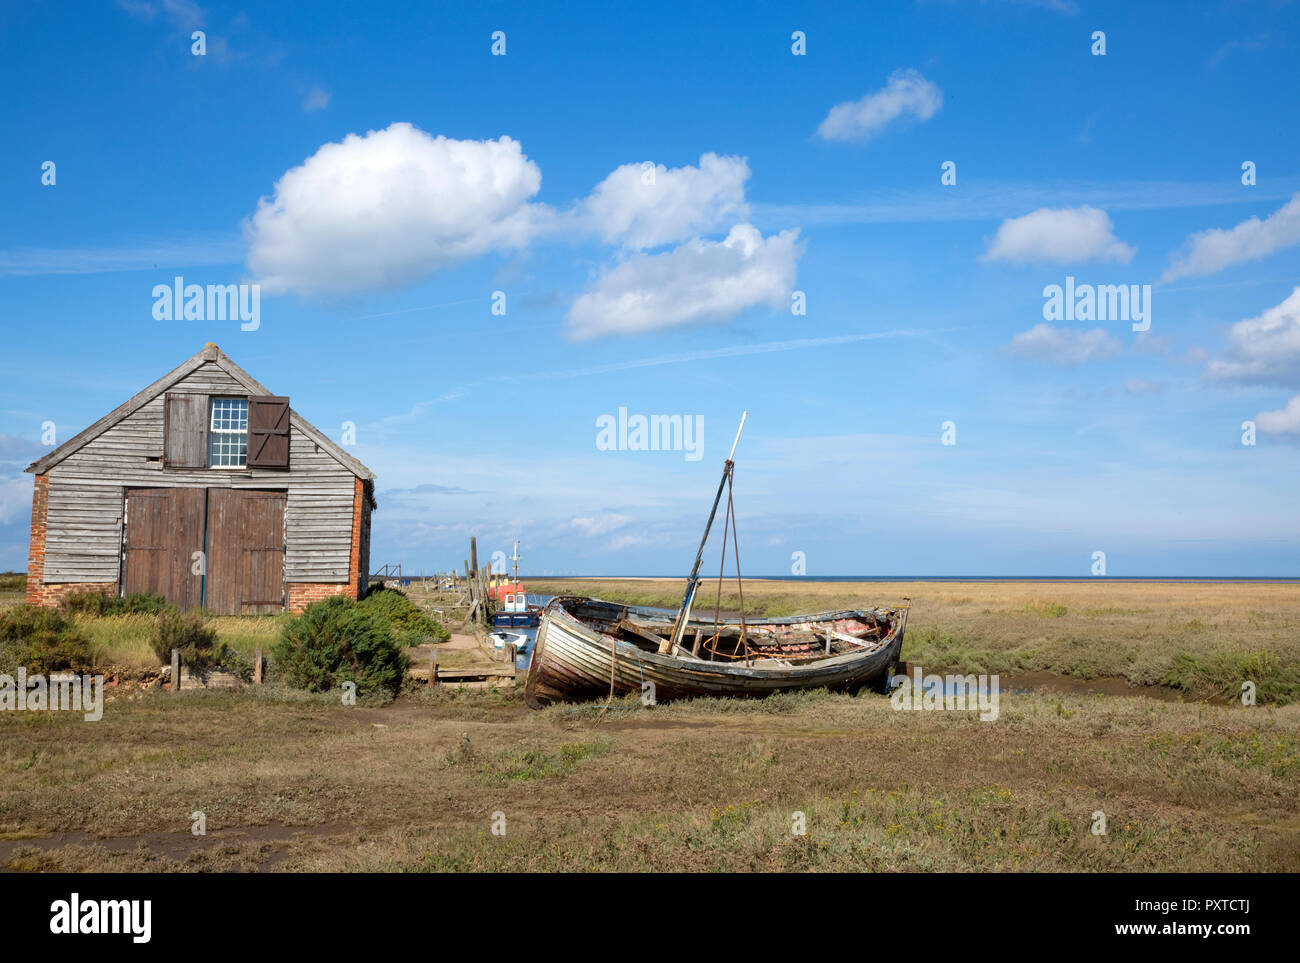 Boats and boat-house on estuary at Thornham Old Harbour, Thornham, Norfolk, England - Stock Image